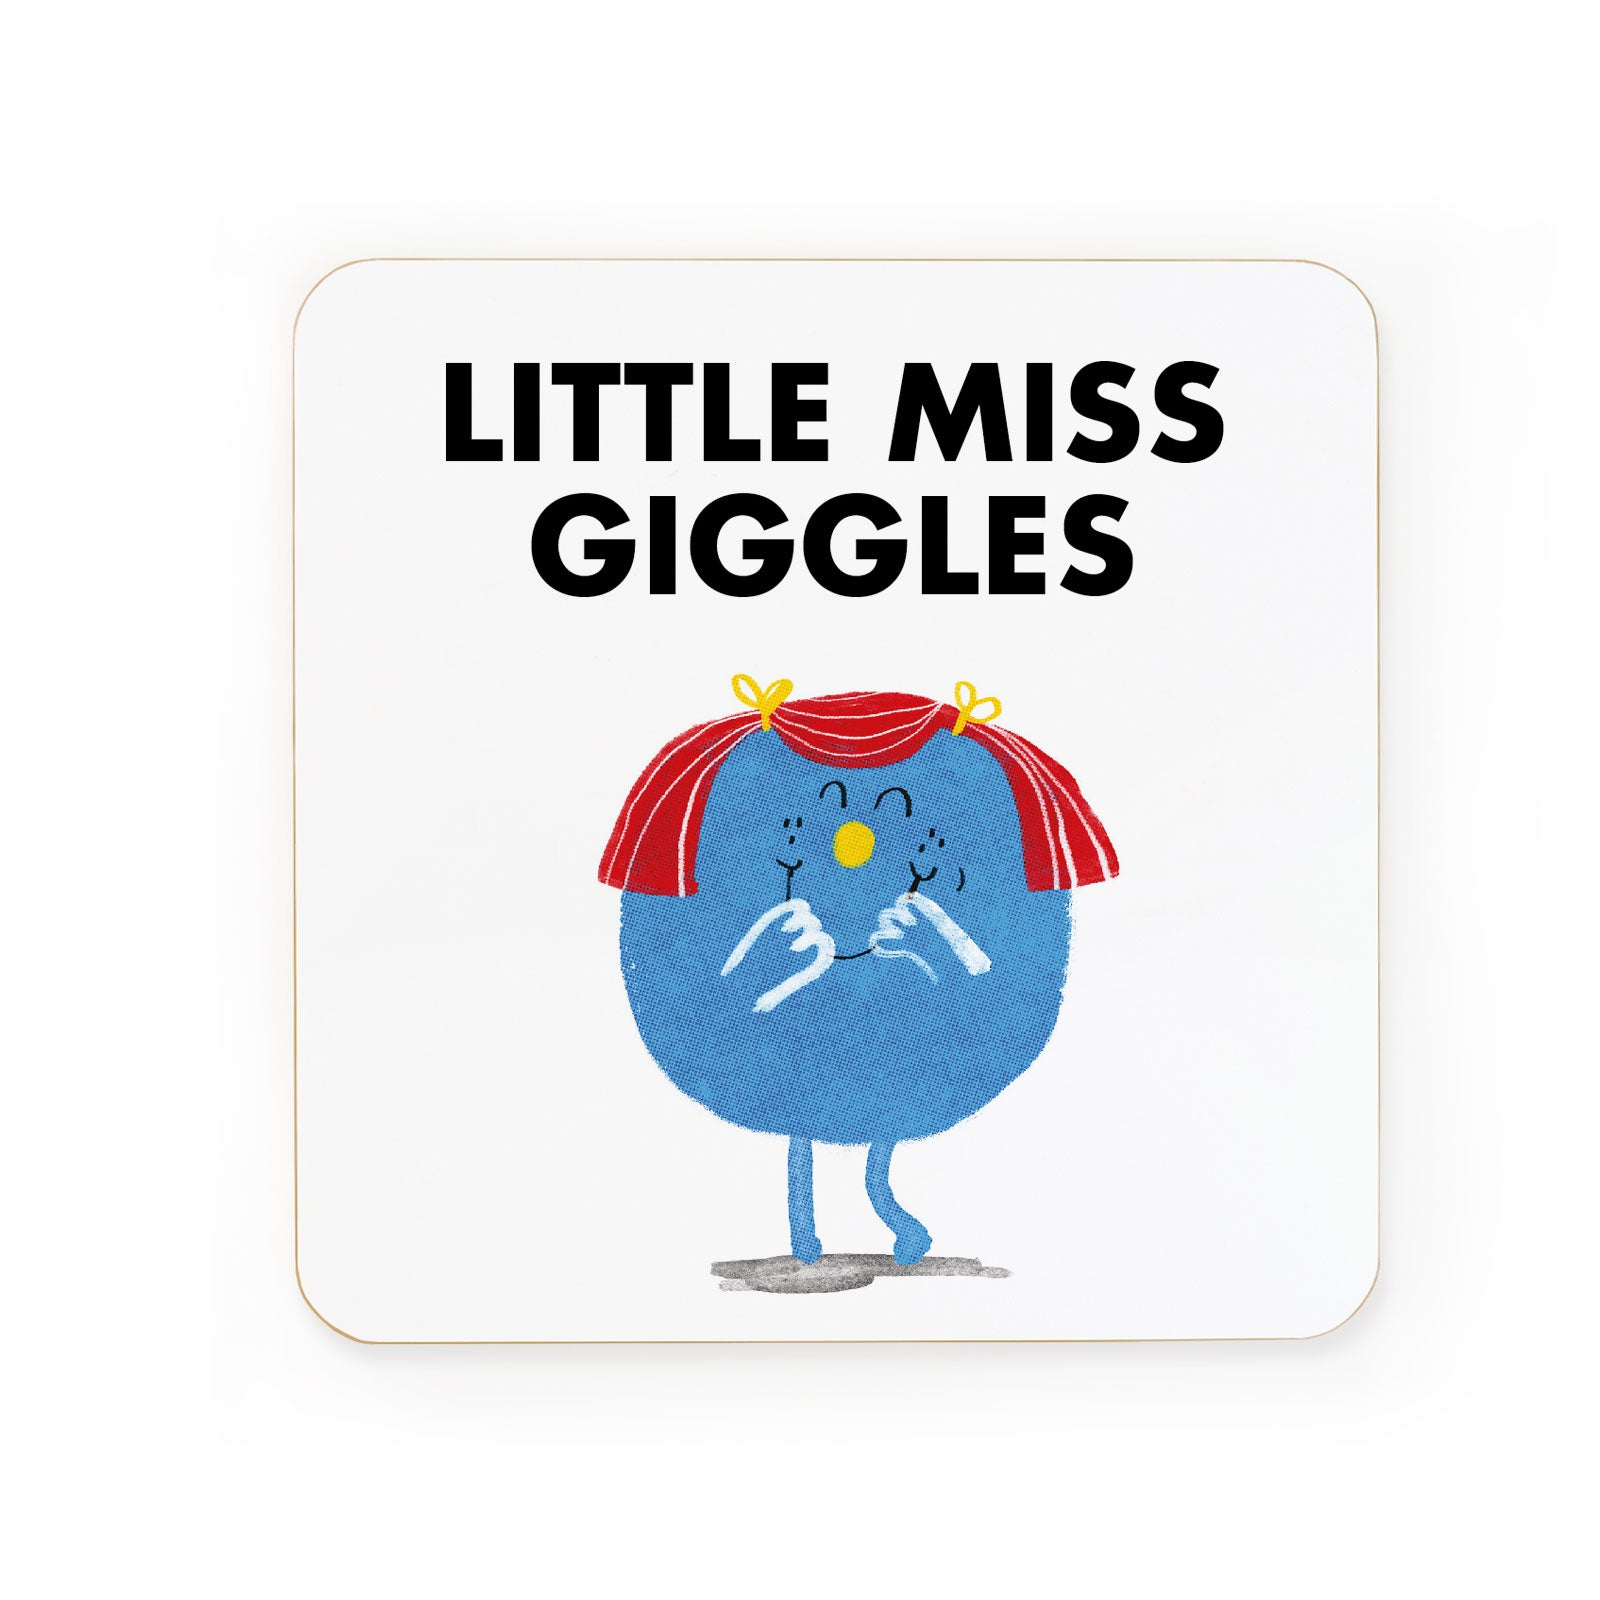 Little Miss Giggles Coaster